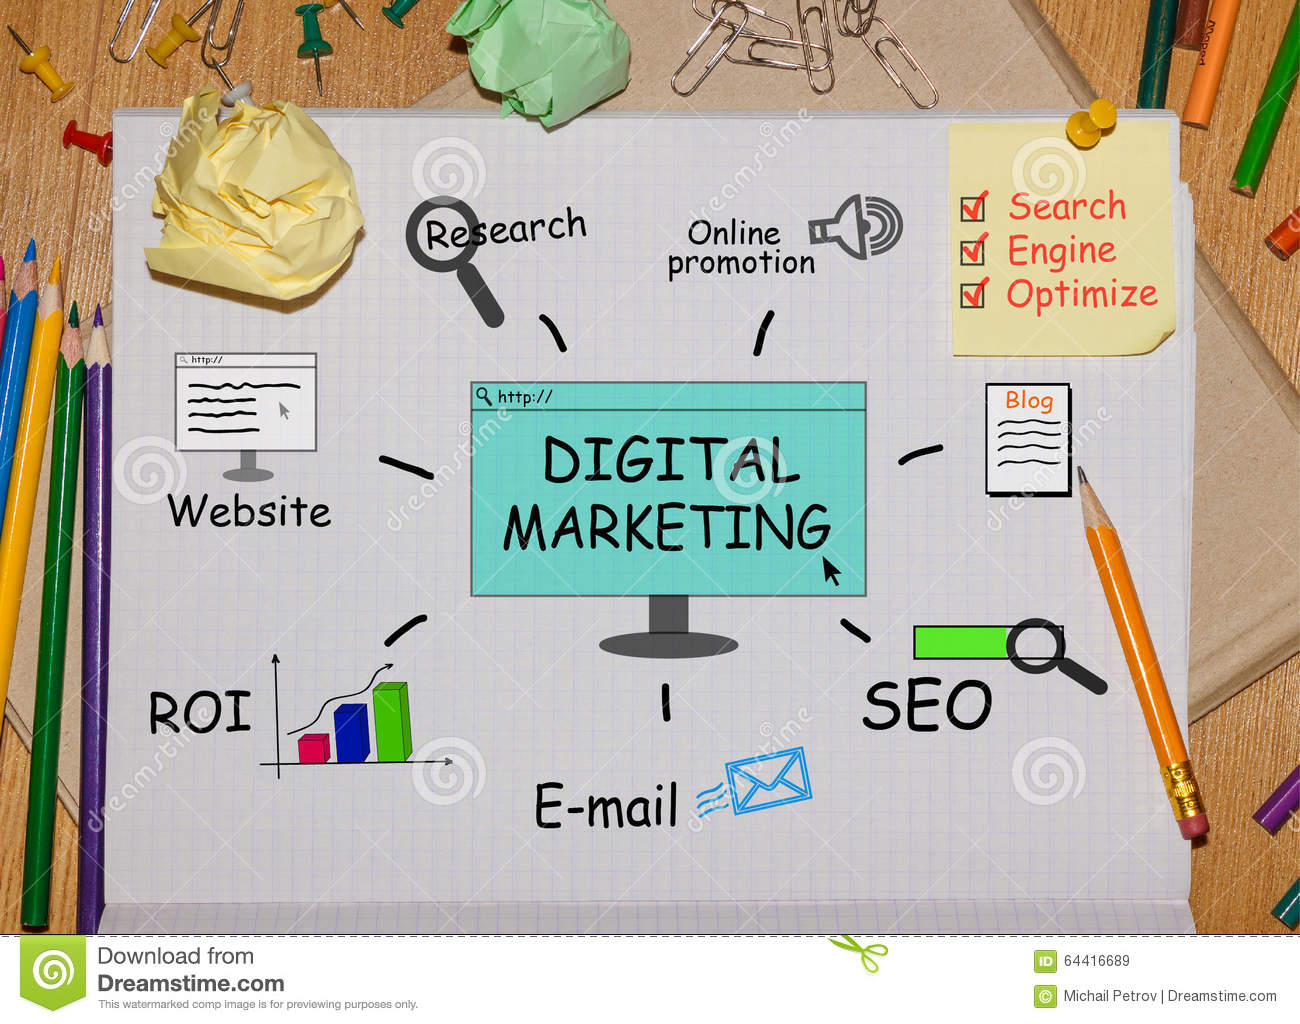 digital marketing notes Digital marketing digital marketing training in bangalore  reset was 70% higher among participated notes who were shown to a lead mail piece (75%).